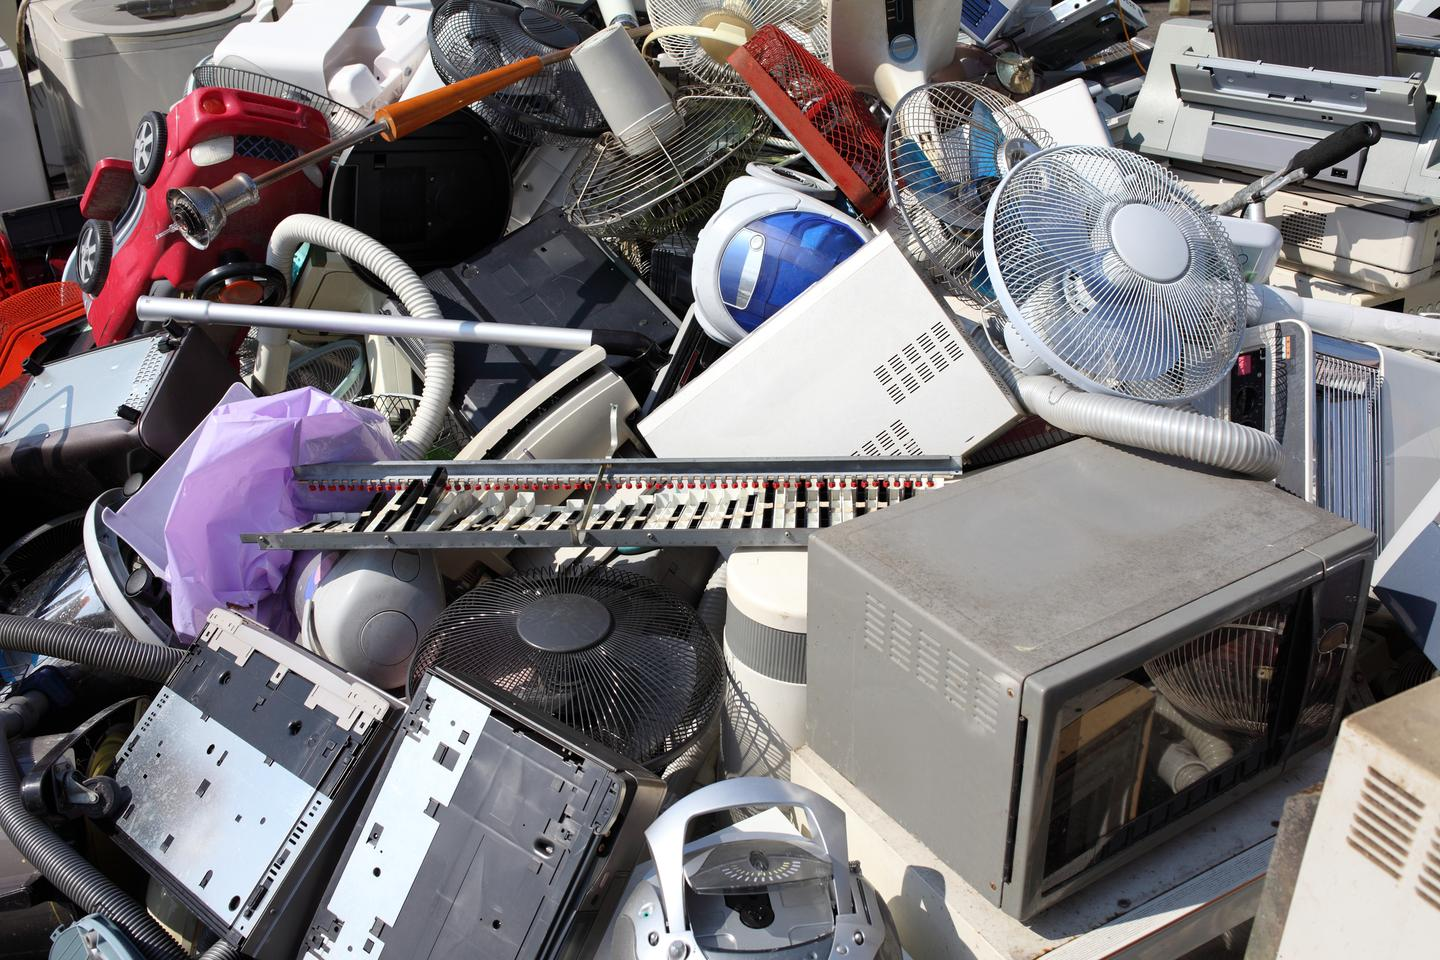 According to the United Nations, about 20 to 50 million tonnes (22 to 55 US tons) of e-waste are disposed of worldwide every year